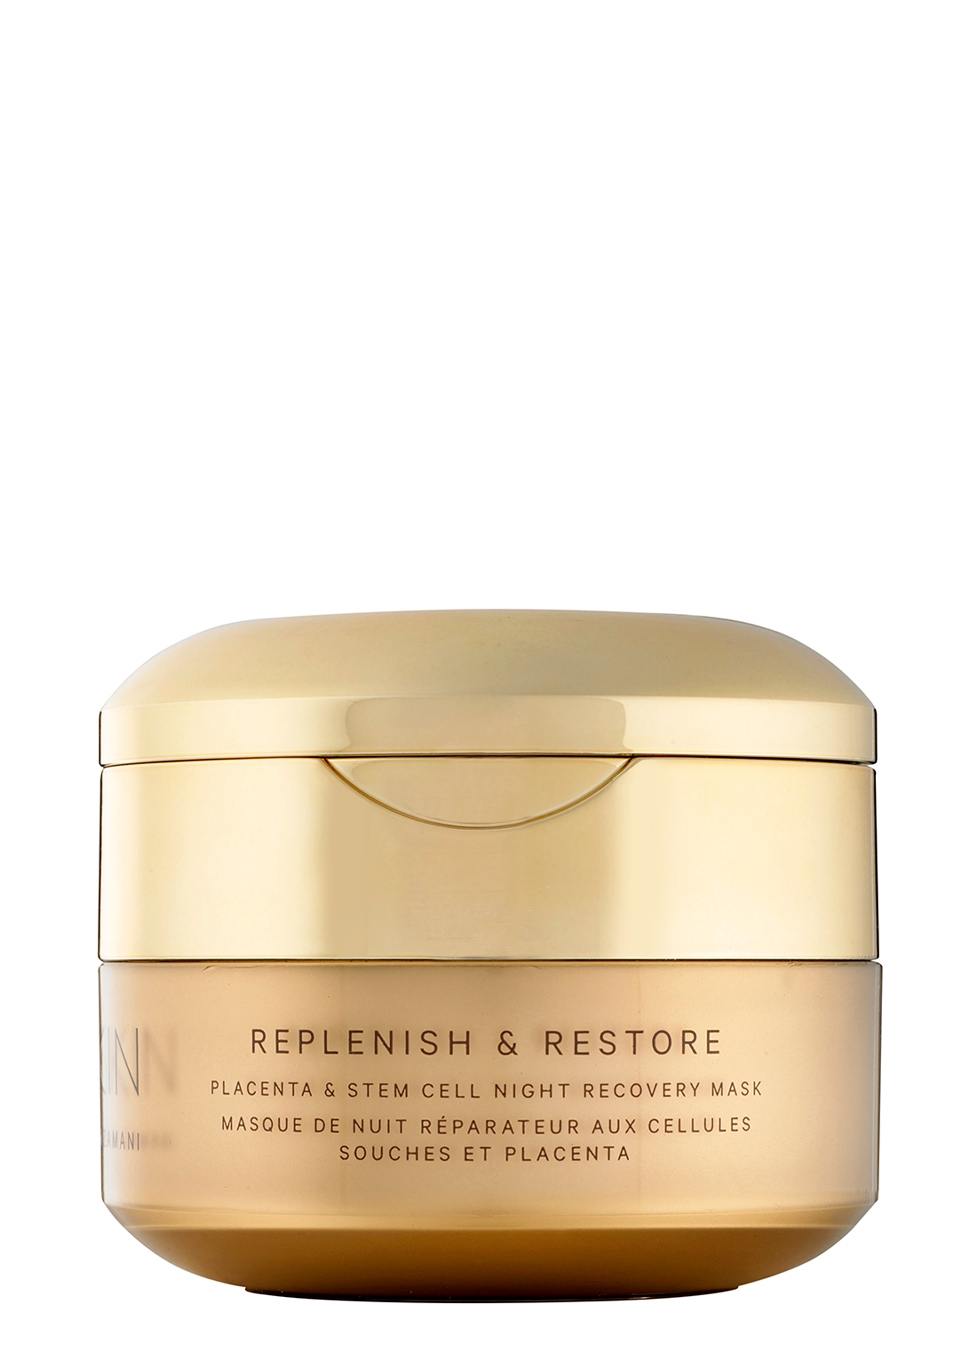 Replenish & Restore Placenta & Stem Cell Night Recovery Mask 30ml